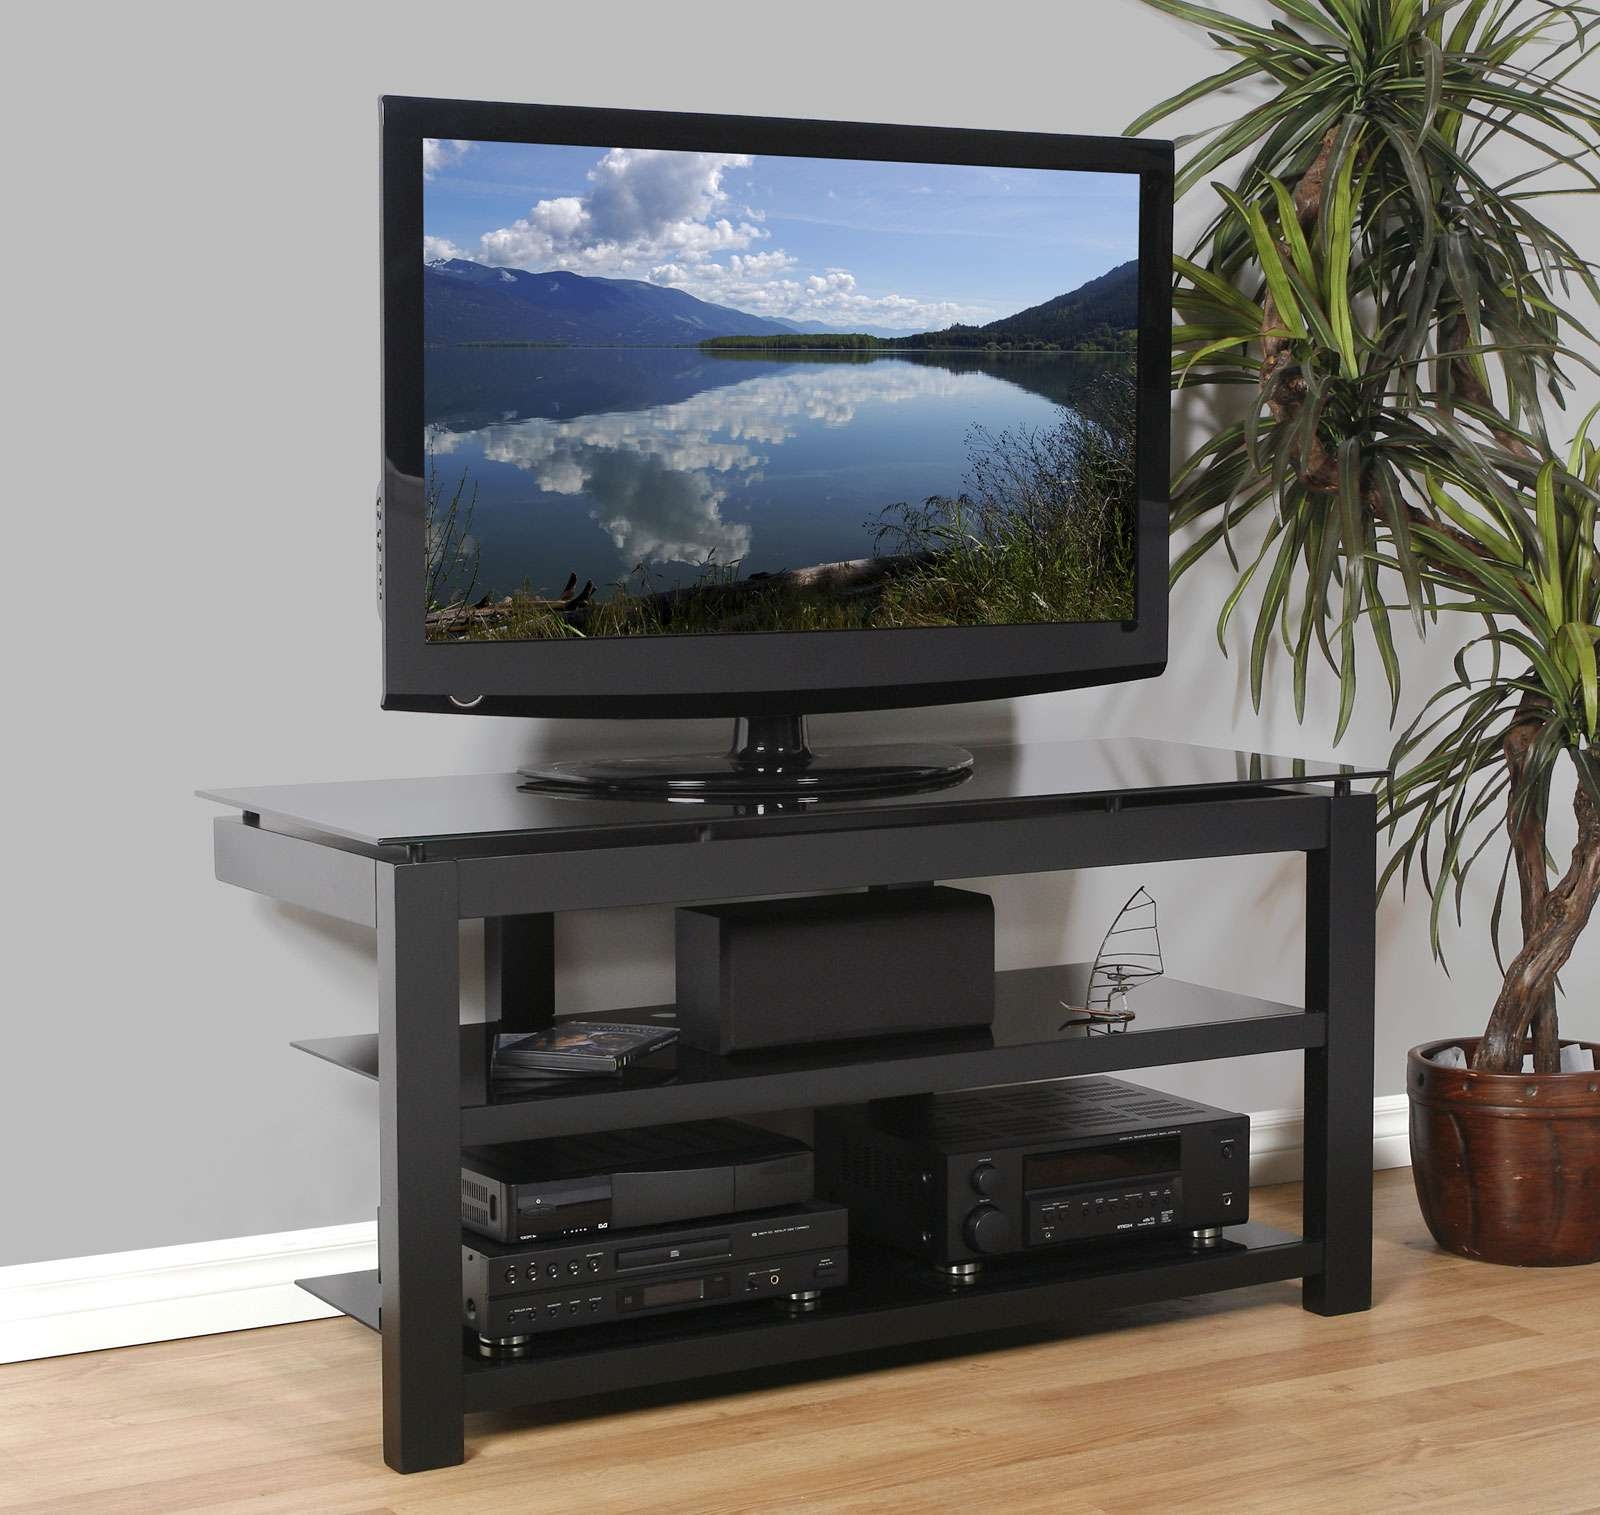 50 Inch Flat Screen Tv Stand – Natural Wood Veneers And Black In Wood Tv Stands With Glass (Gallery 3 of 15)